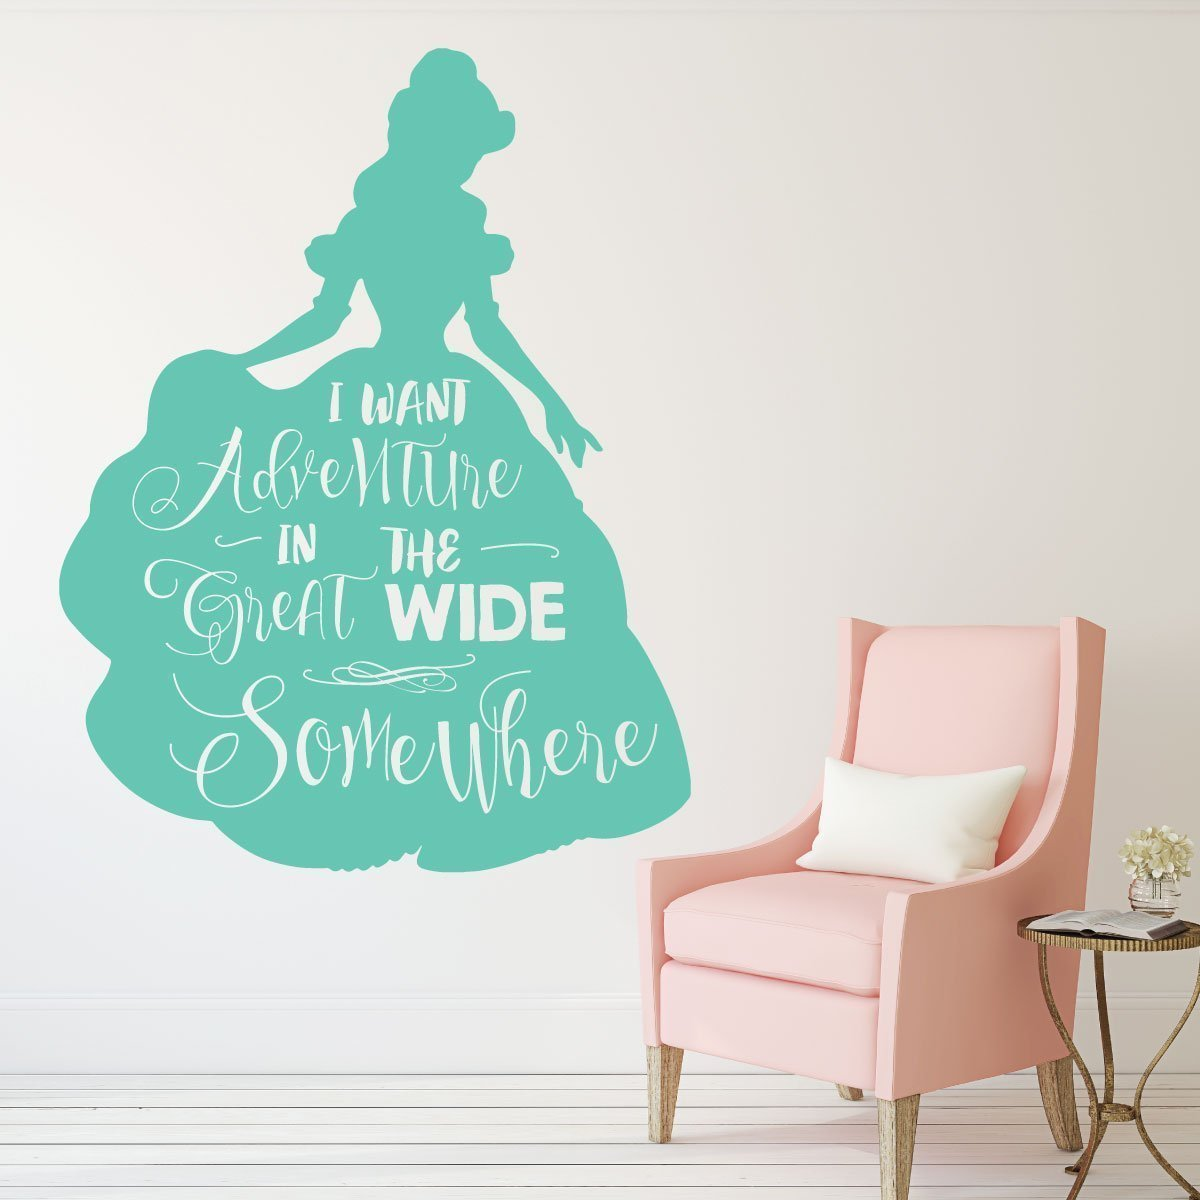 Disney Princesses Wall Decor- BELLE - Beauty and the Beast Theme Party Decorations - I want Adventure - For the Playroom, Child Room